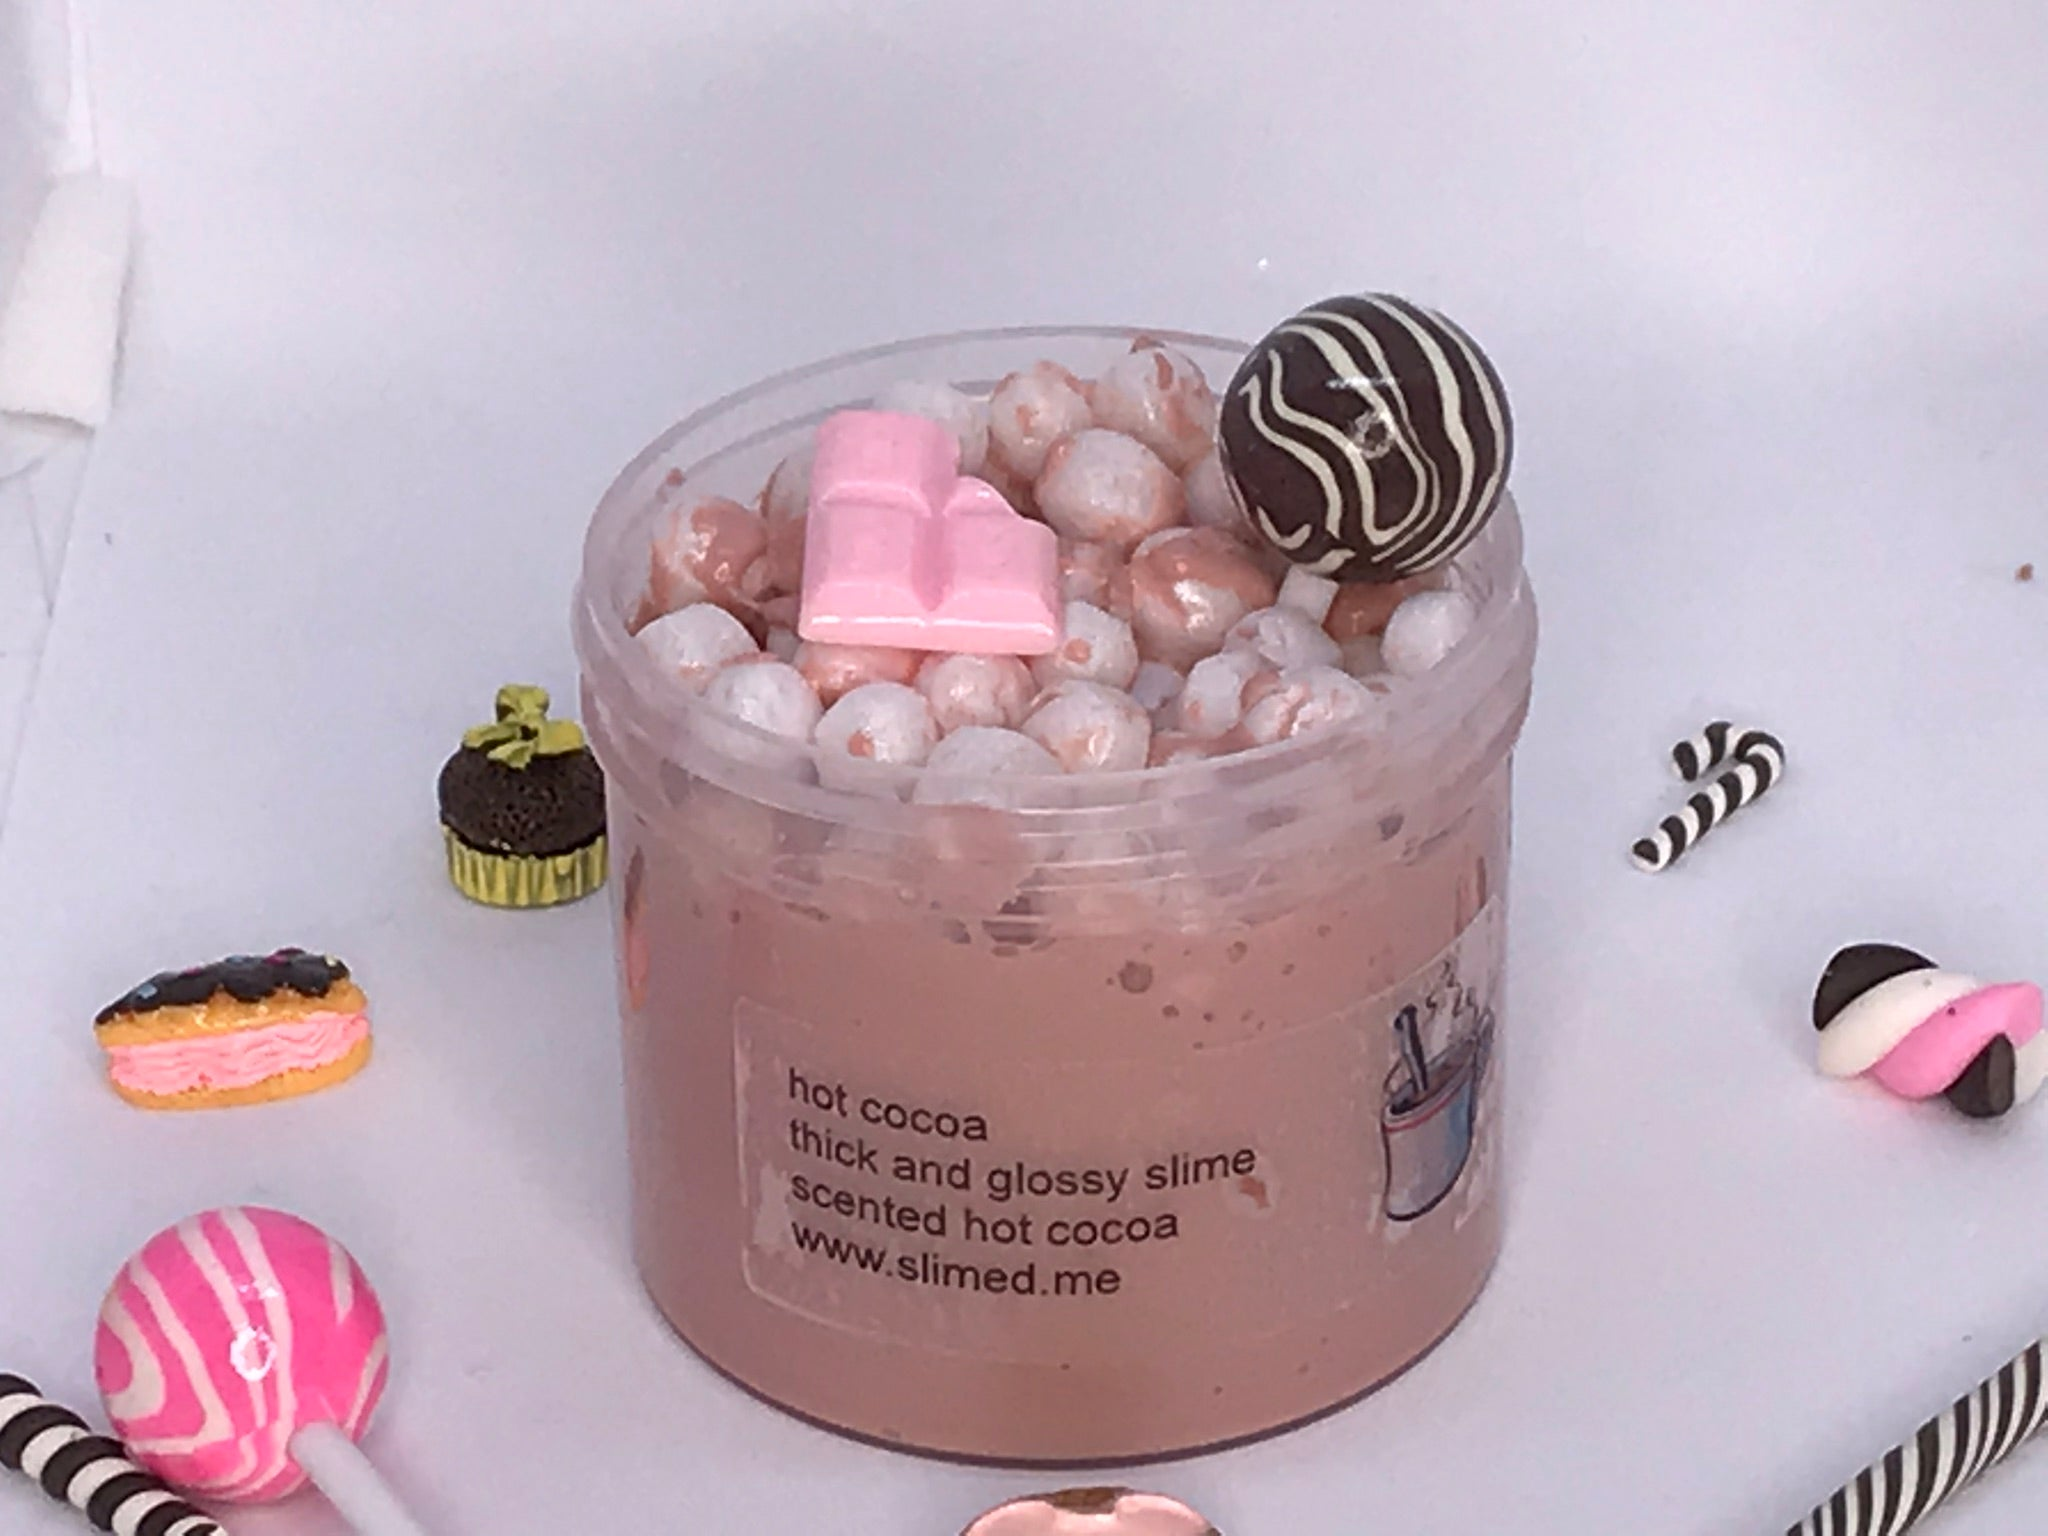 Hot Cocoa Thick Glossy Slime